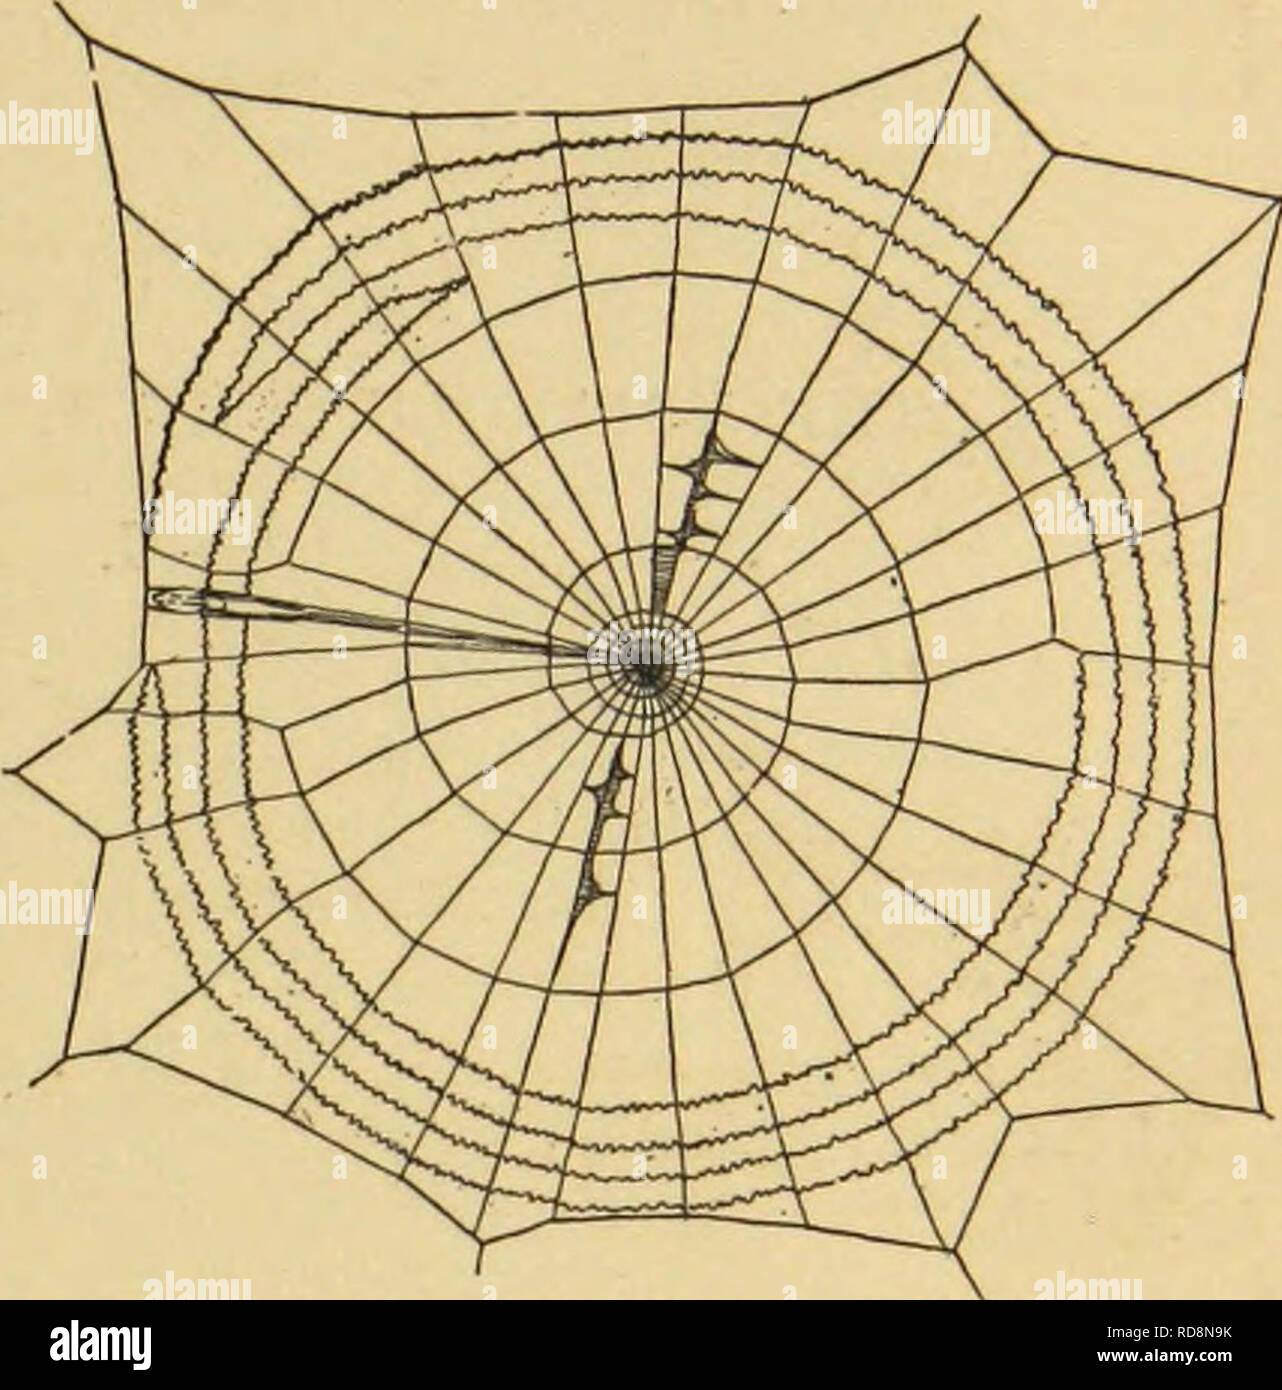 """. American spiders and their spinning work. A natural history of the orbweaving spiders of the United States, with special regard to their industry and habits. Spiders. THE PEATHEKPOOT SPIDER, ULOBORUS PLUMIPES. 179. Fig. 167. Unfinished web of Uloborus Walckenaerius. (After Emerton.) The same author says that the spiral lines of Hyptiotes and Uloborus have a strong, smooth thread through the centre. That of Hyptiotes, which he examined fresh, had the finer . part arranged in reg- Thread """"^^^ leaves or scallops, in whicli the separate fibres could not be distinguished. The thread of Ulobo - Stock Image"""